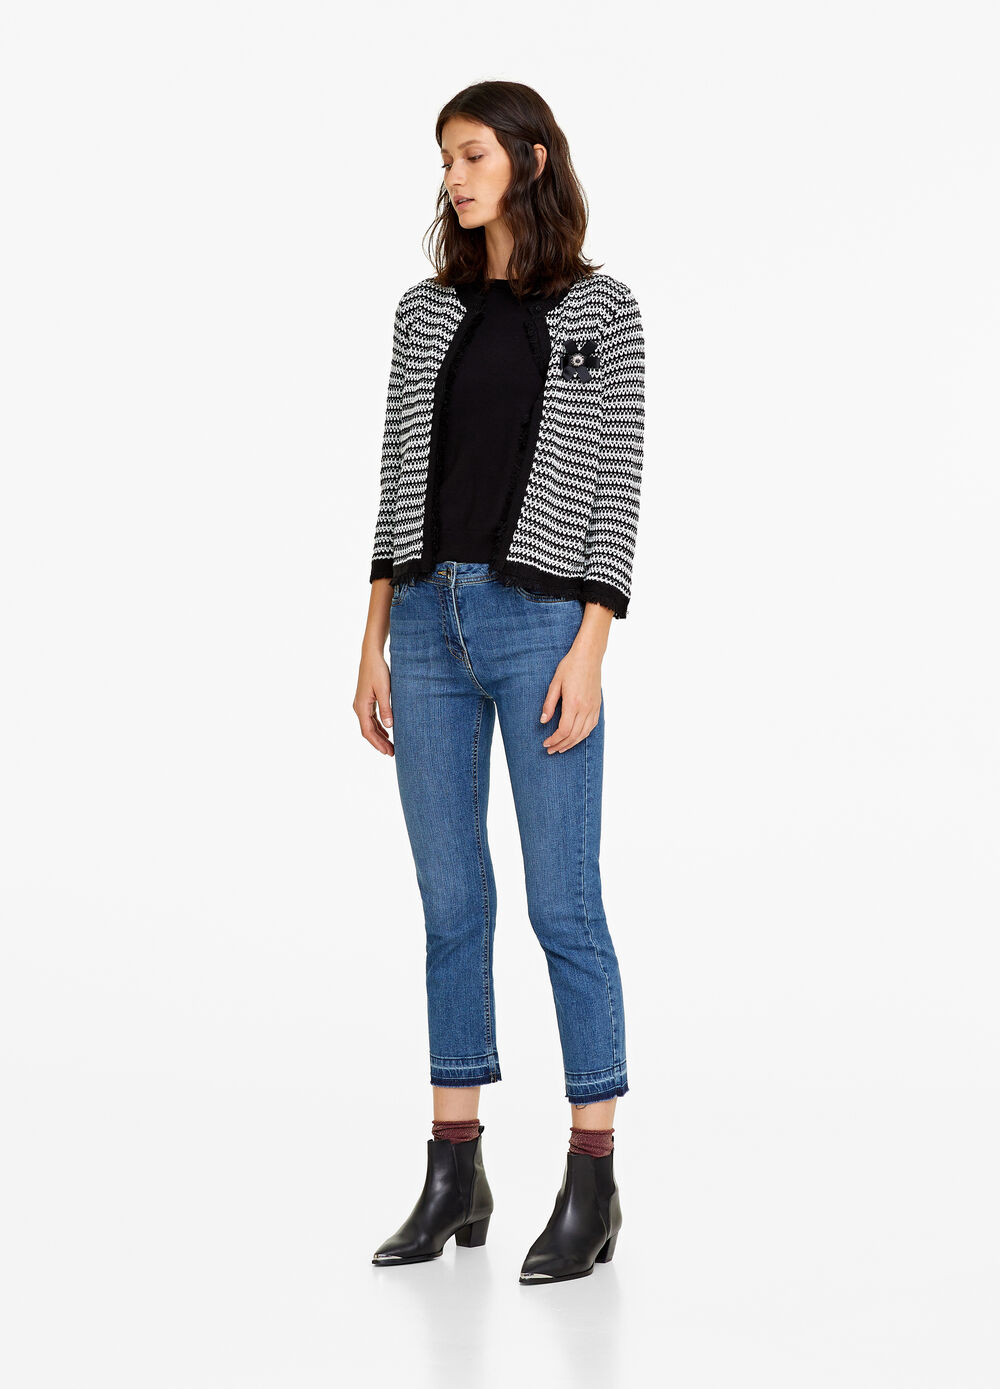 Giacca cardigan tricot a righe